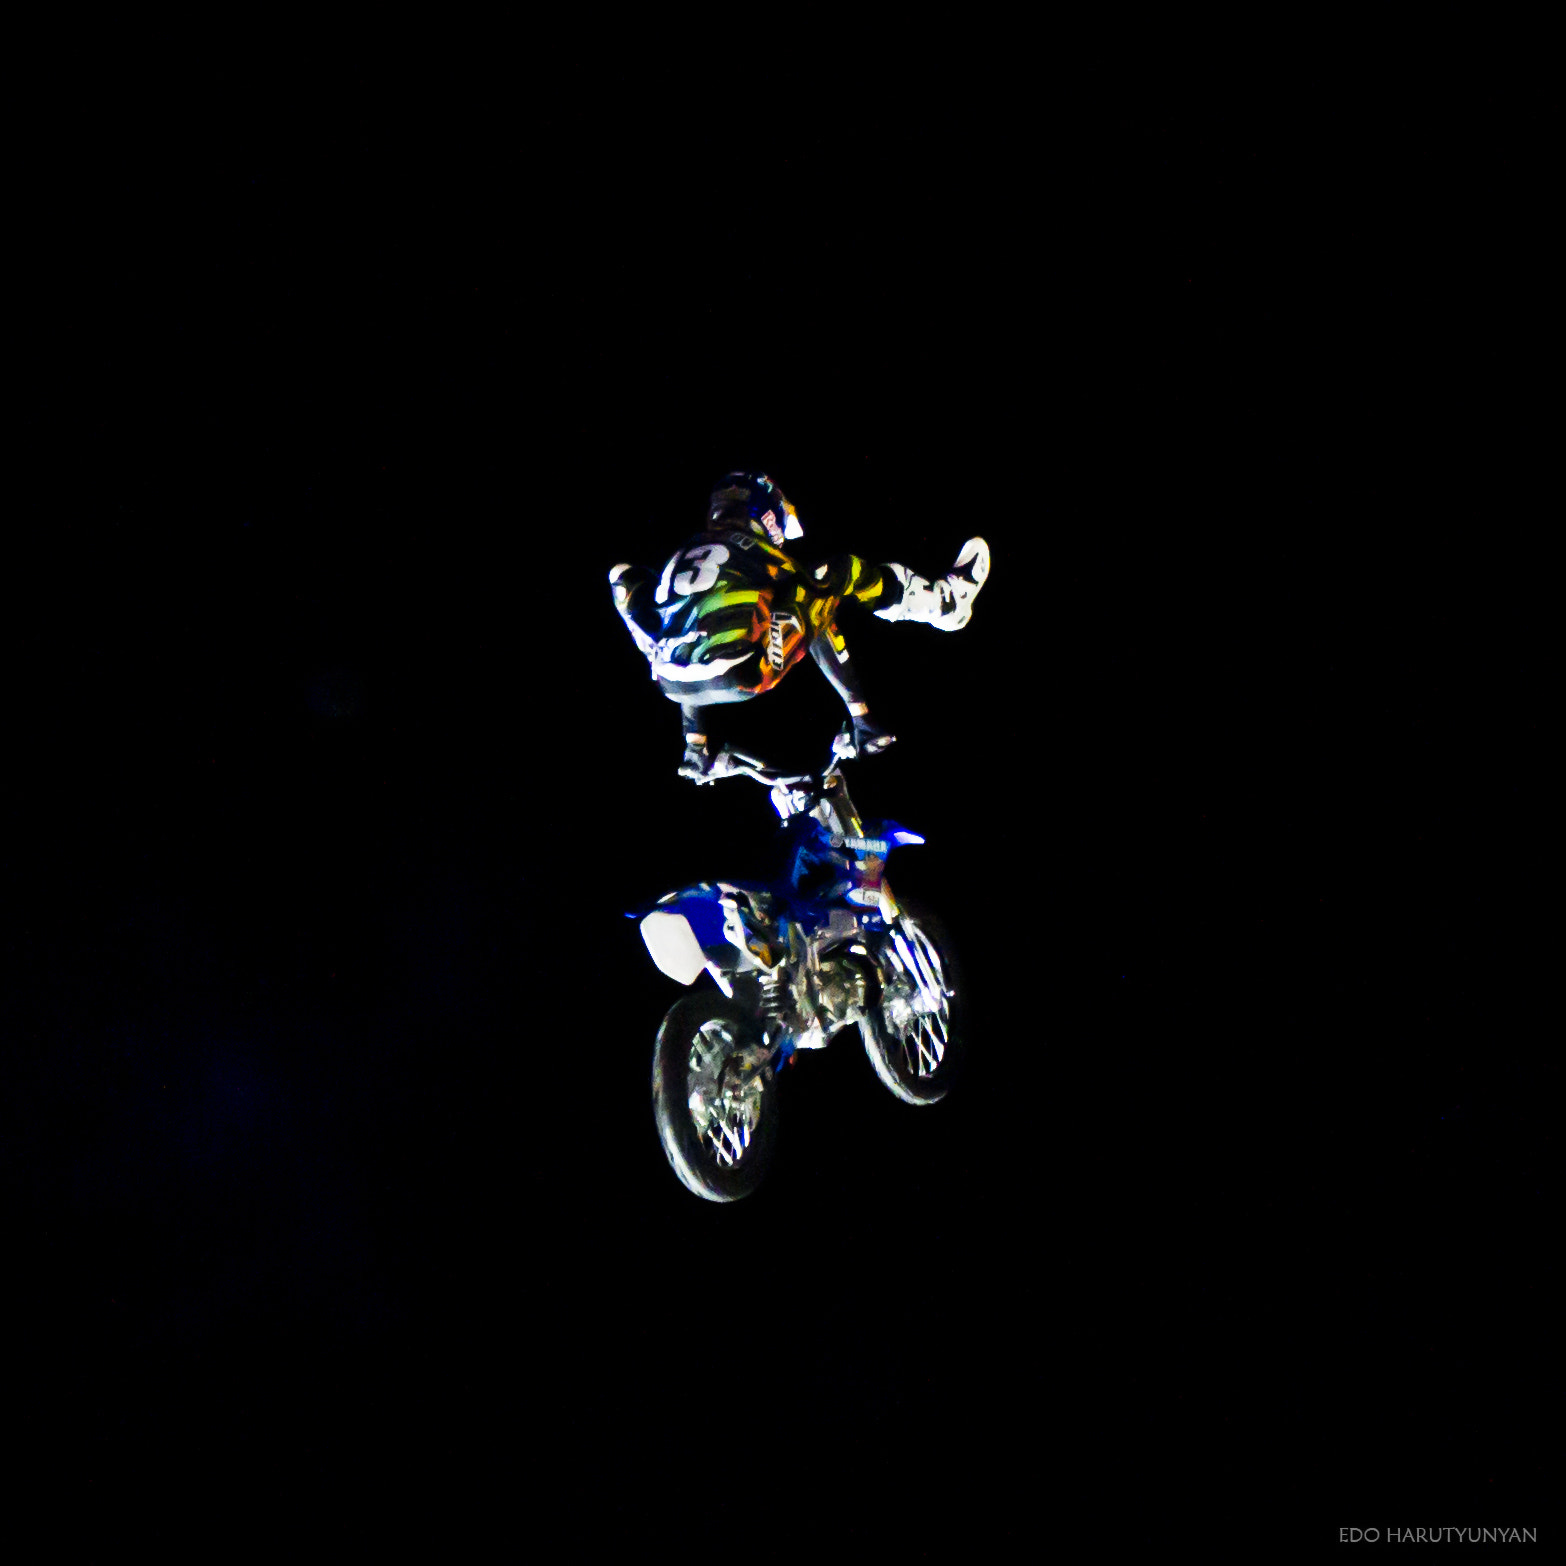 Photograph X-Fighters Jams  by Edo Harutyunyan on 500px